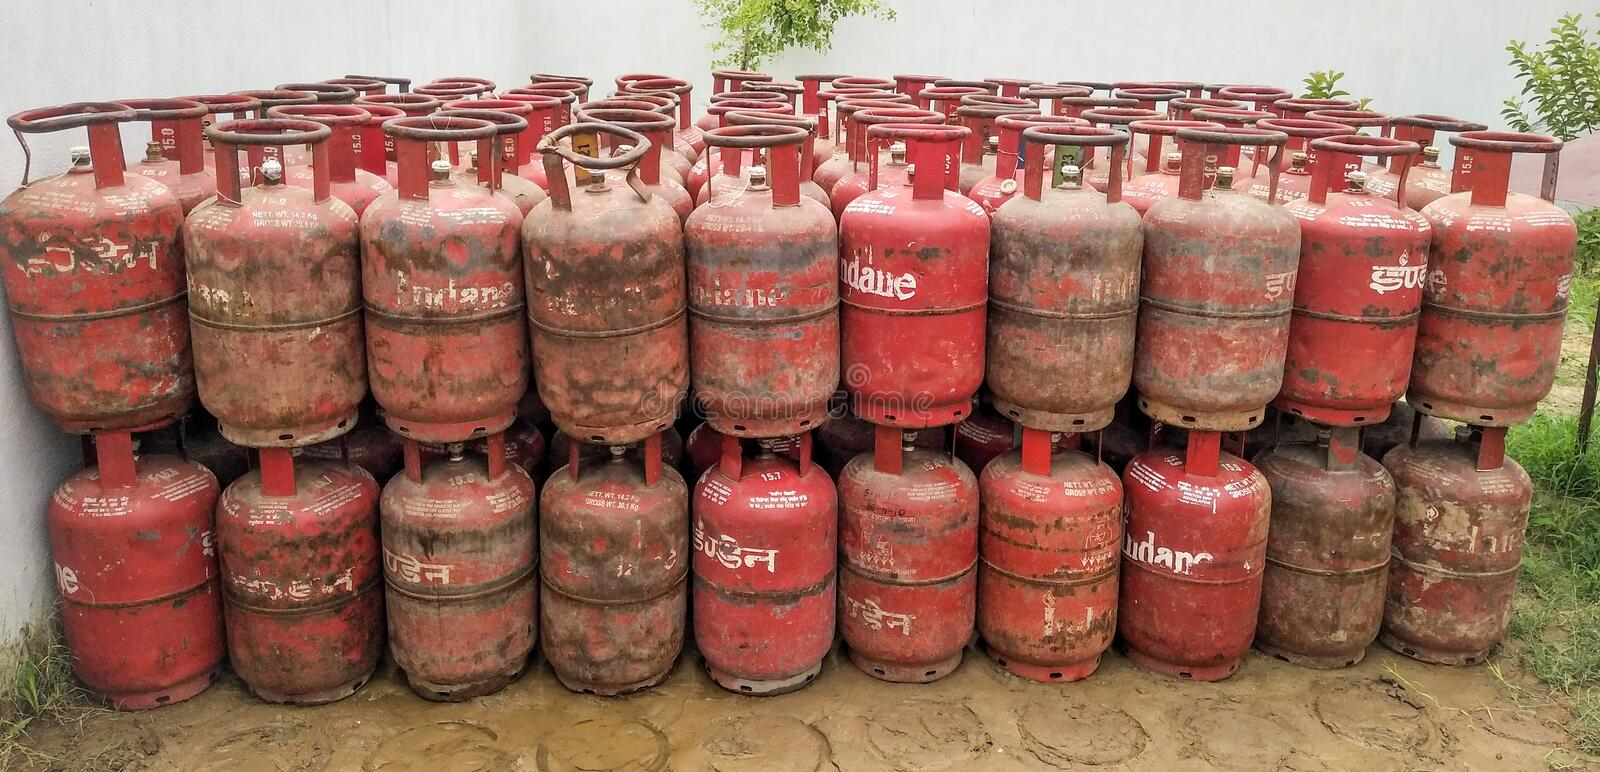 673 Cooking Gas Cylinder Photos - Free & Royalty-Free Stock Photos from Dreamstime